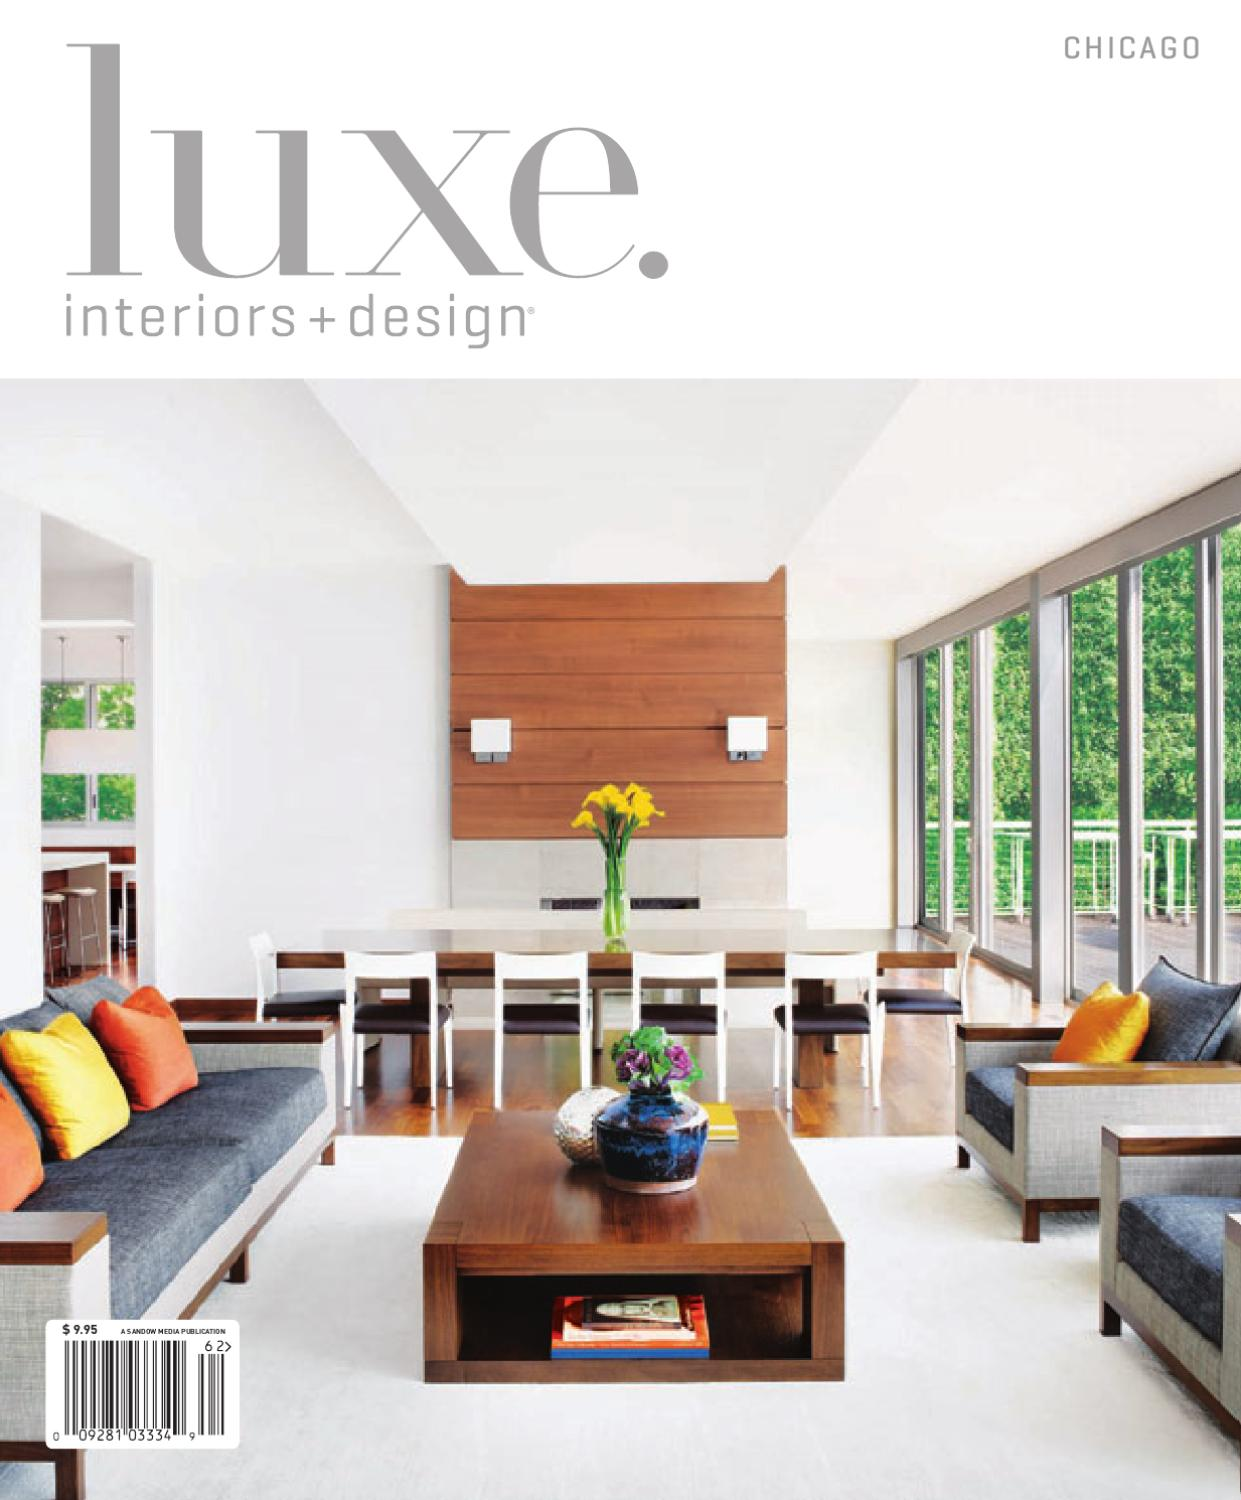 Luxe interior design chicago by sandow media issuu for Luxe interieur design